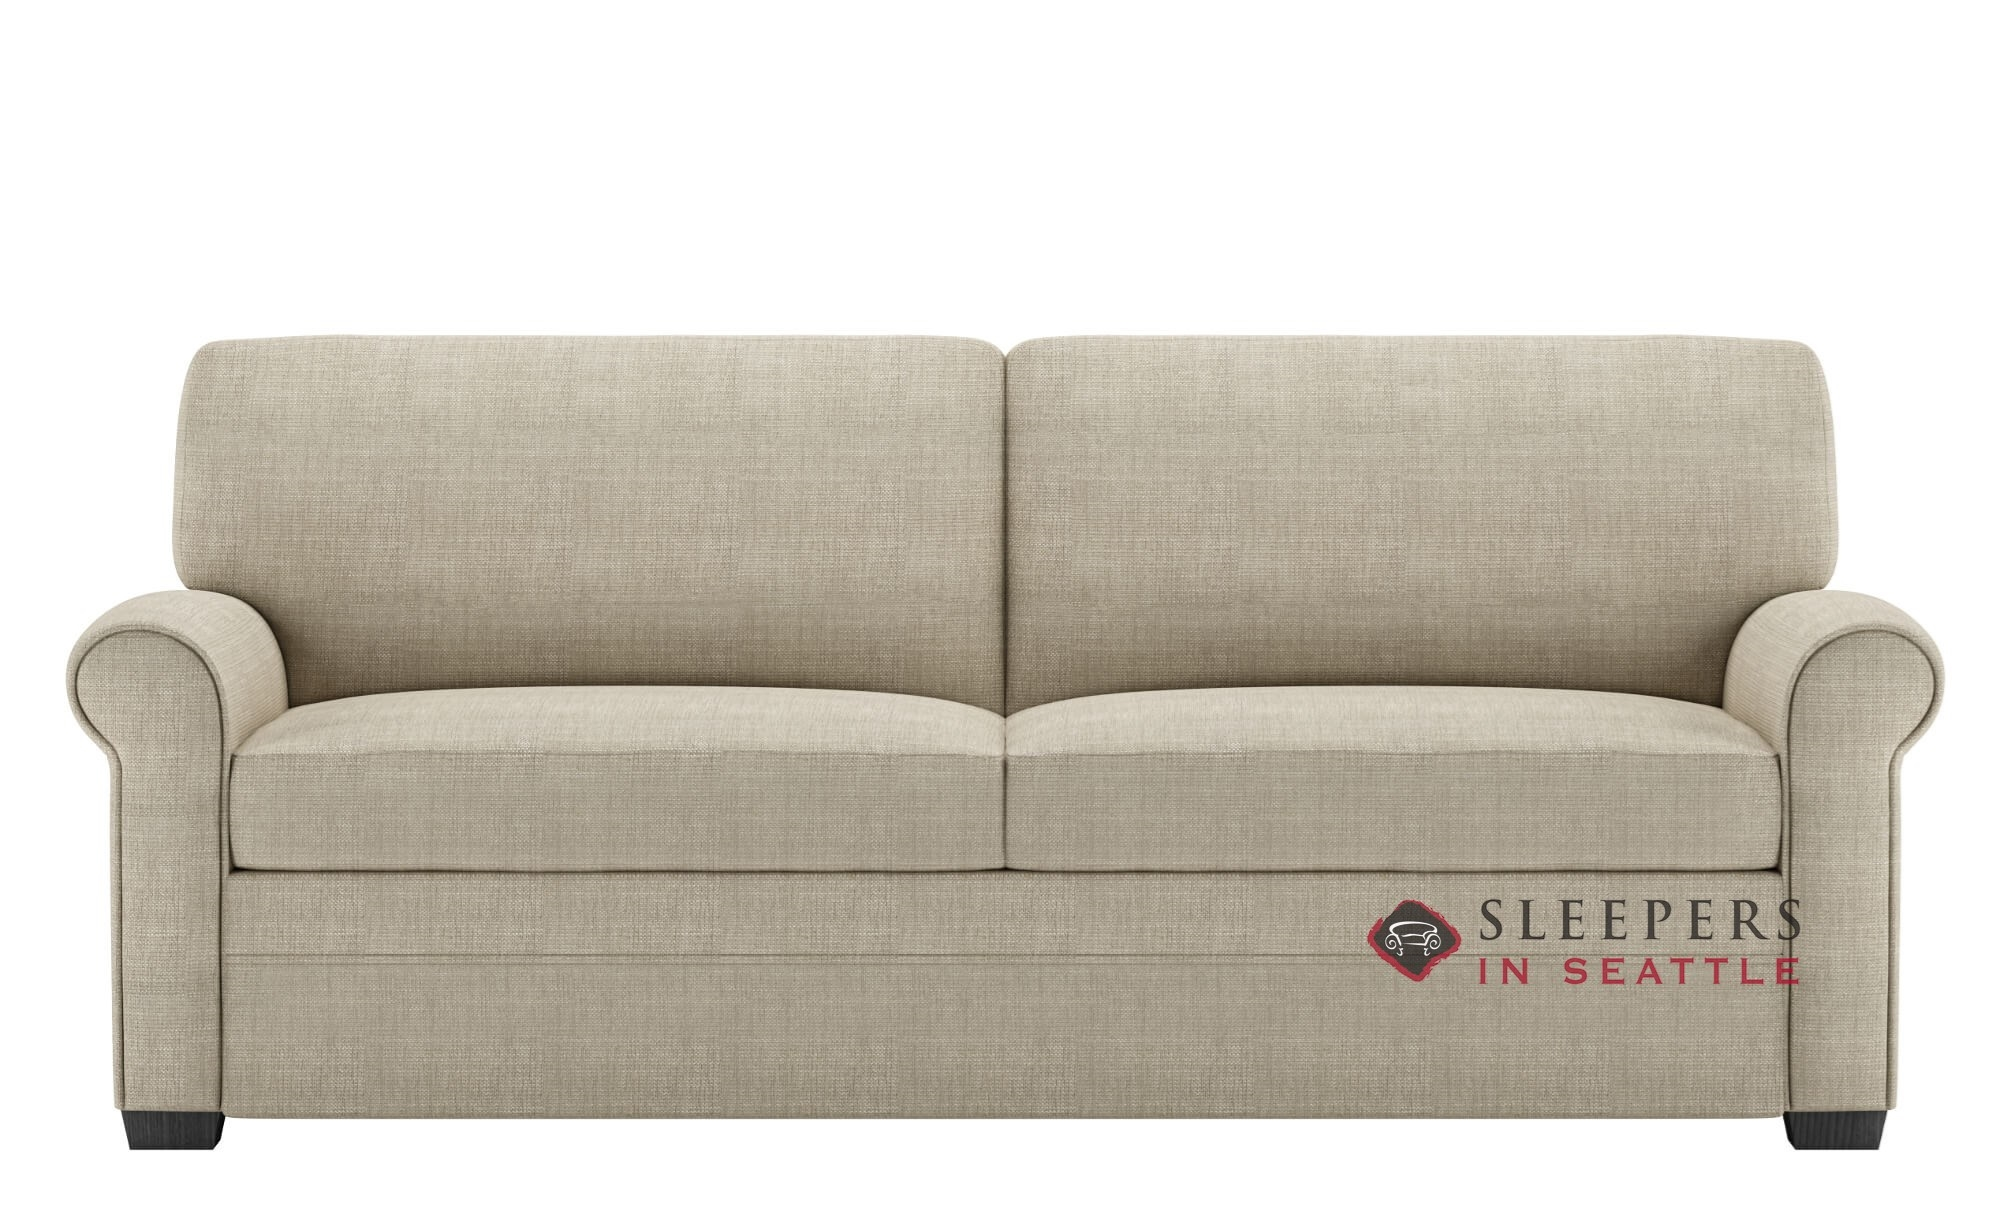 american leather gaines comfort sleeper generation viii - American Leather Sofa